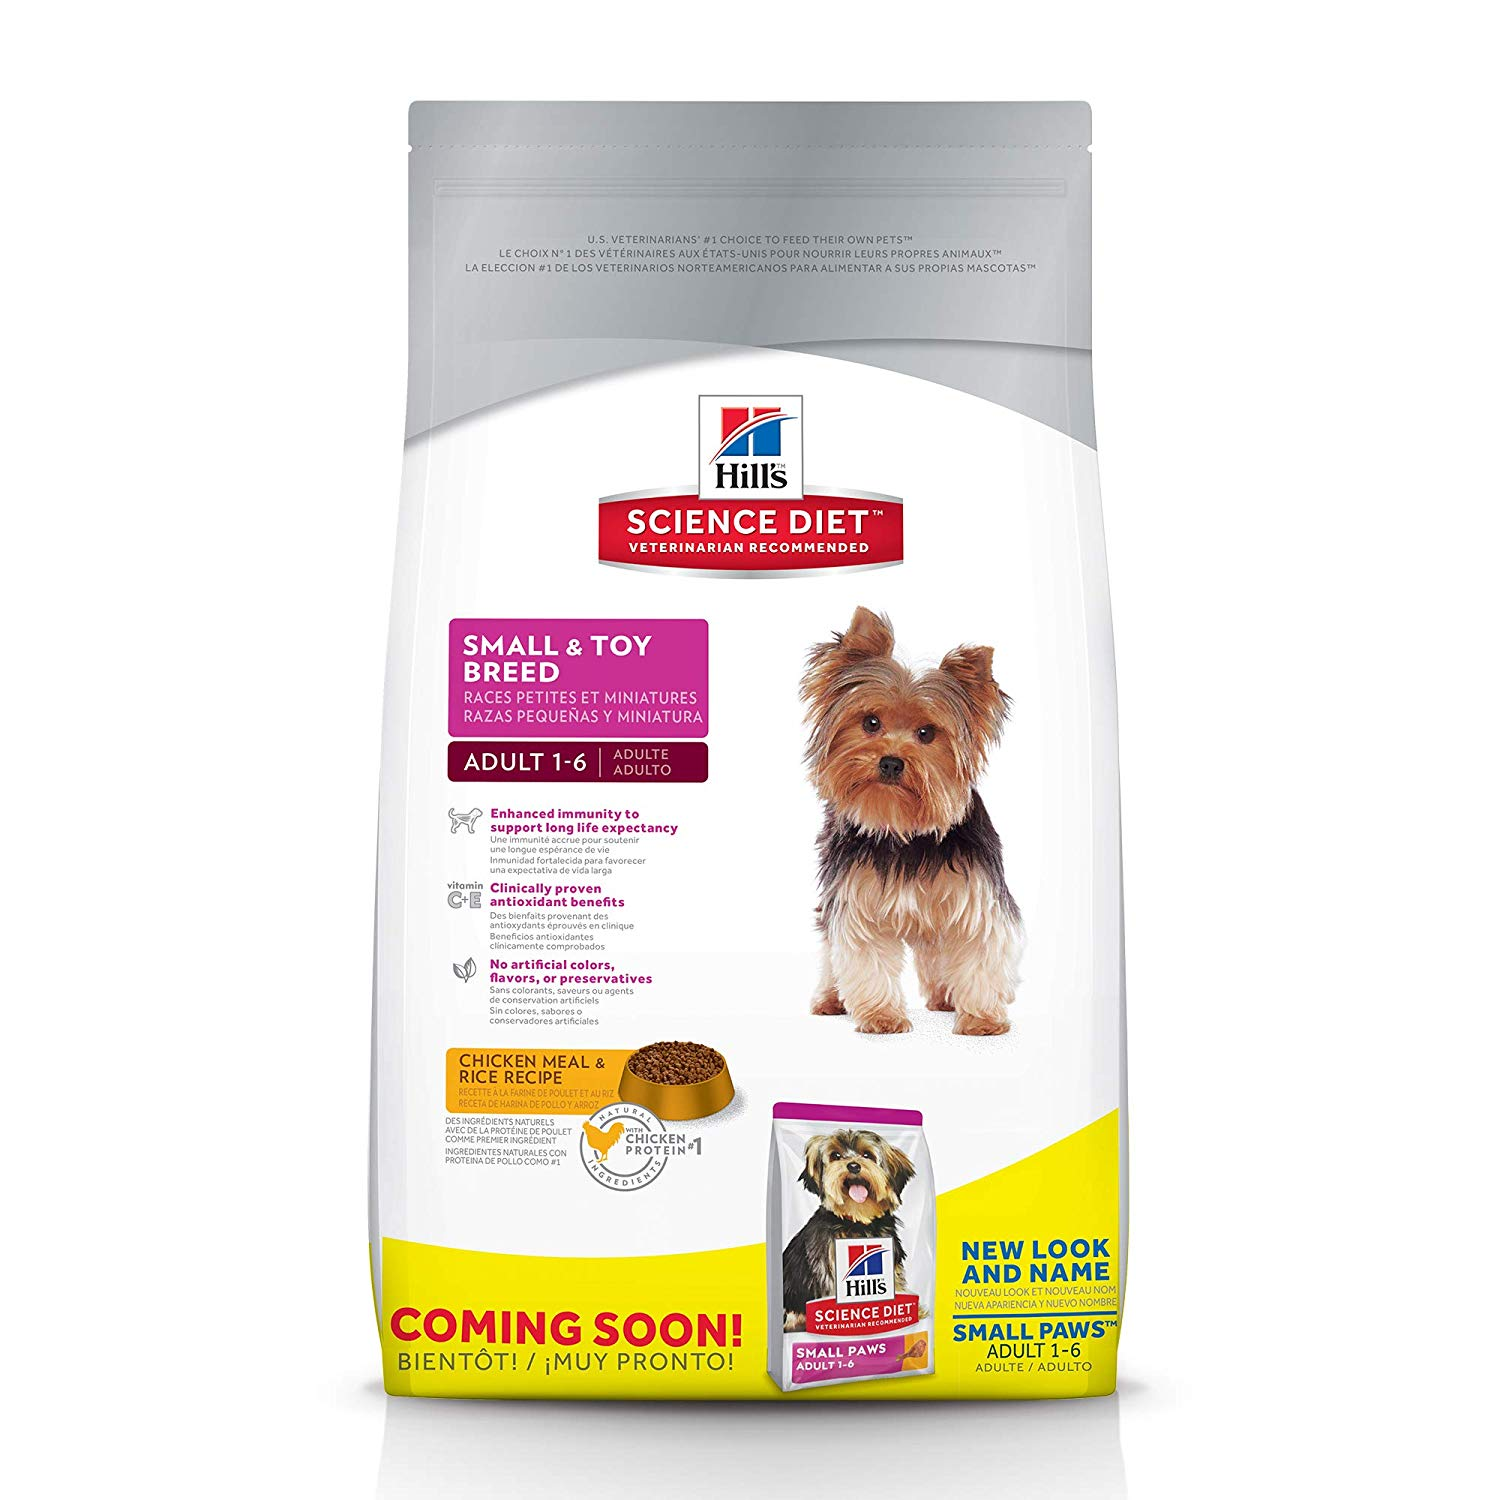 Hill's Science Diet Small and Toy Breed Dry Dog Food